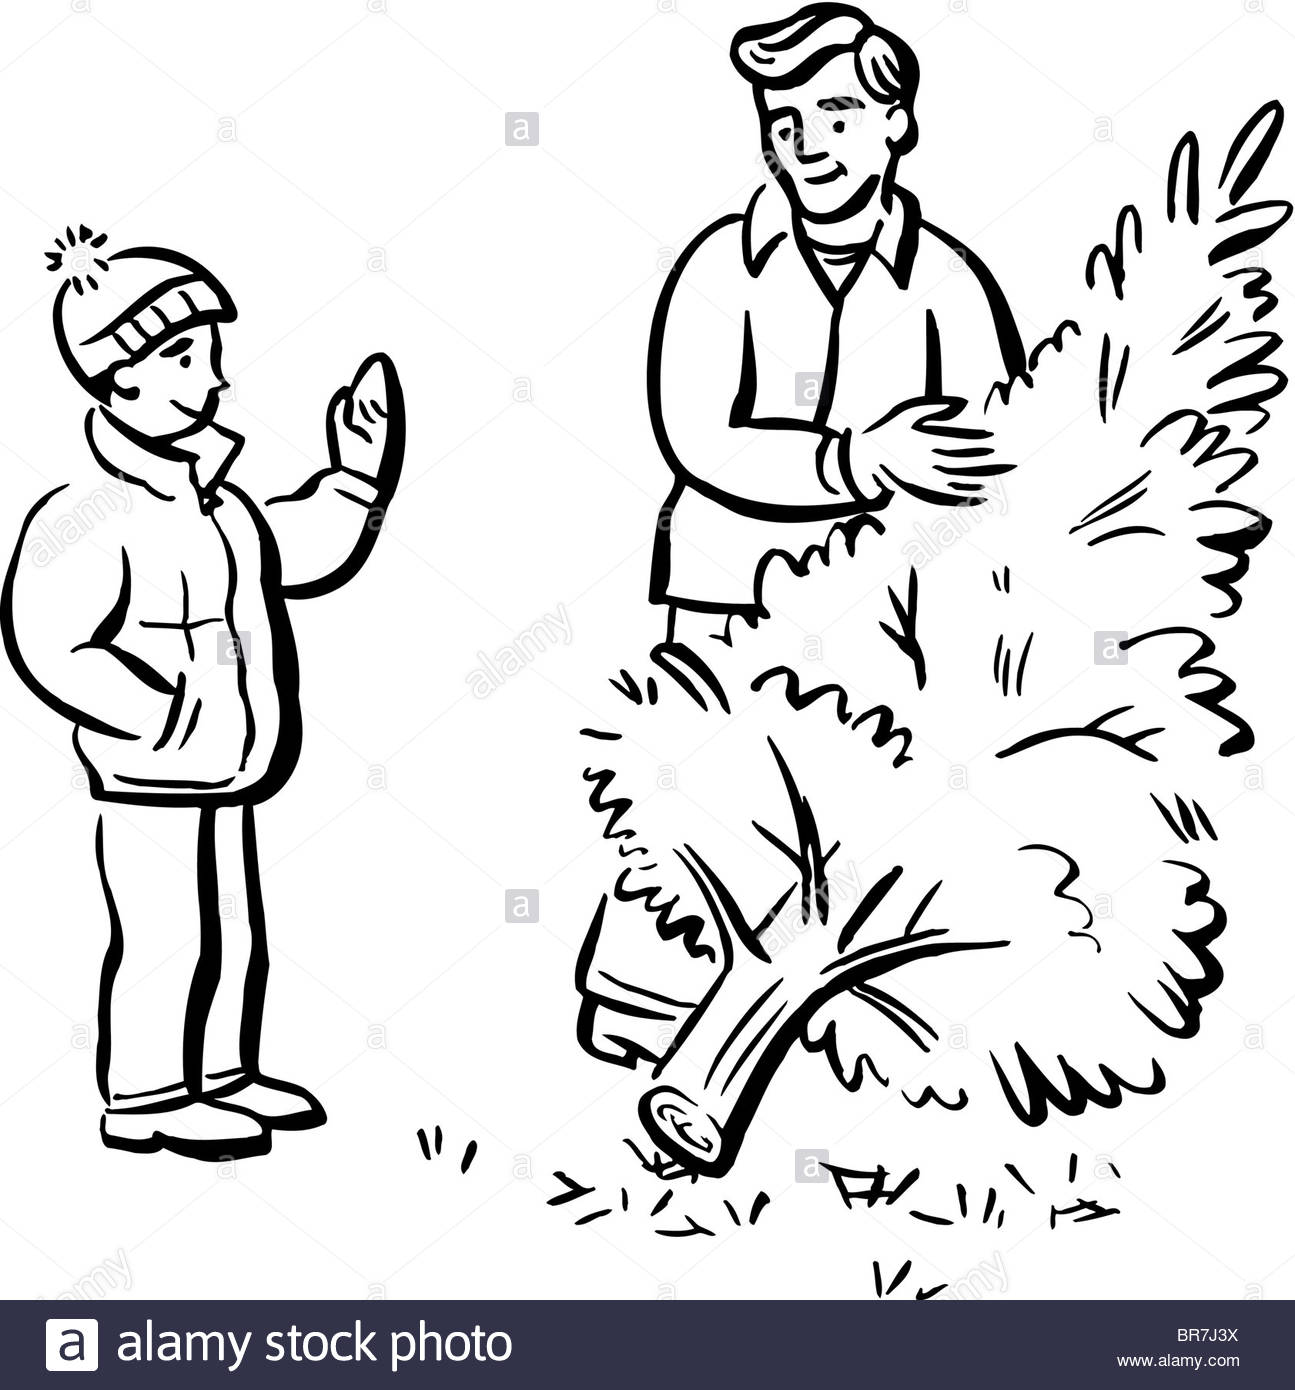 1295x1390 A man cutting down a tree represented in black and white Stock